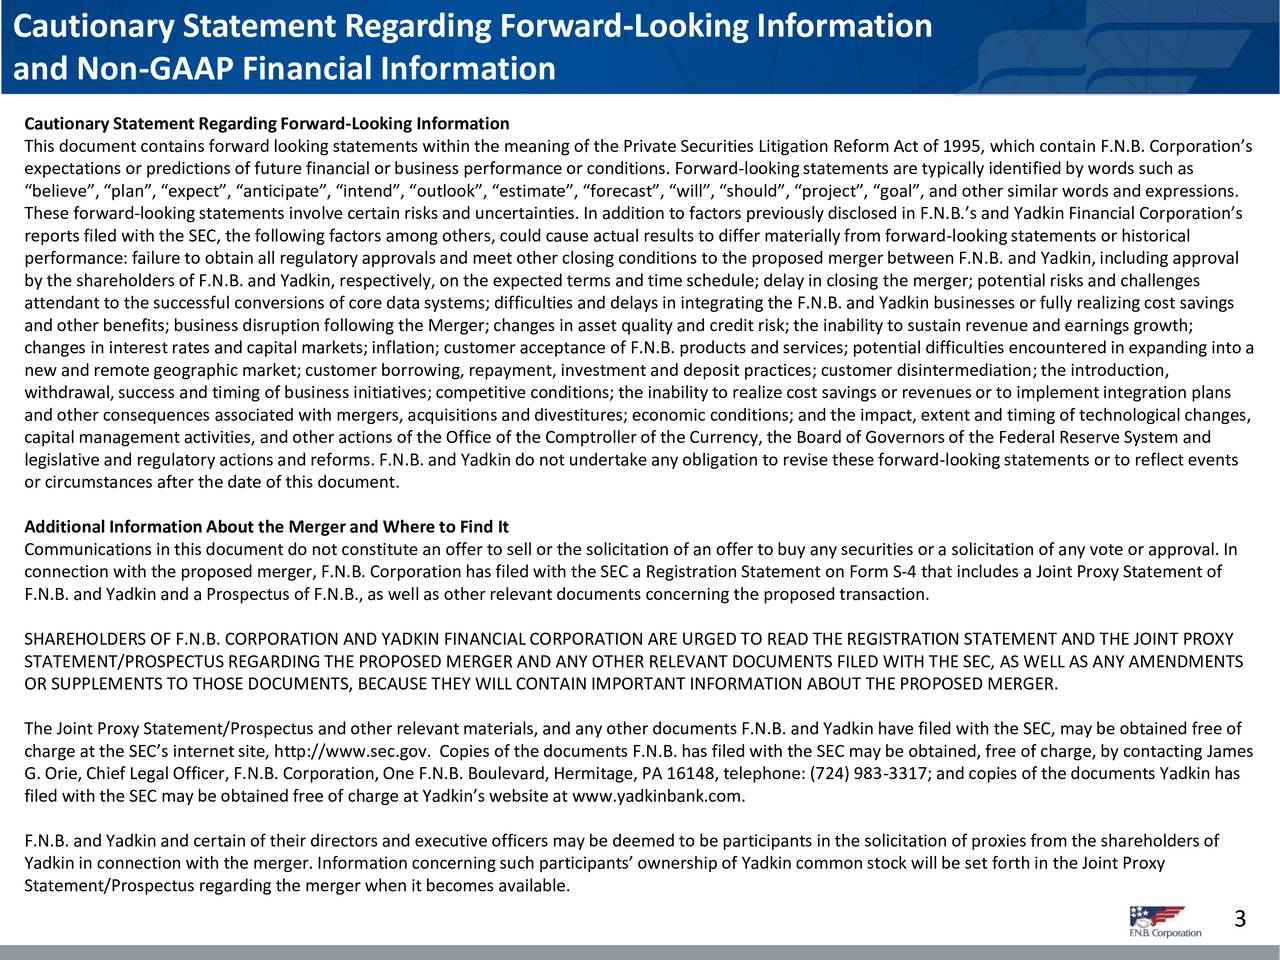 and Non-GAAP Financial Information Cautionary StatementRegarding Forward-Looking Information This document contains forward looking statements within the meaning of the Private Securities Litigation Reform Act of 1995, which contain F.N.B. Corporations expectations or predictions of future financial or business performance or conditions. Forward-lookingstatements are typically identified by words such as believe, plan, expect, anticipate, intend, outlook, estimate, forecast, will, should, project, goal, and other similar words and expressions. These forward-looking statements involve certain risks and uncertainties. In addition to factors previously disclosed in F.N.B.s and Yadkin Financial Corporations reports filed with the SEC, the following factors among others, could cause actual results to differ materially from forward-lookingstatements or historical performance:failure to obtain all regulatory approvals and meet other closing conditions to the proposed merger between F.N.B. and Yadkin, including approval by the shareholdersof F.N.B. and Yadkin, respectively, on the expected terms and time schedule; delay in closing the merger; potential risks and challenges attendant to the successful conversions of core data systems; difficulties and delays in integrating the F.N.B. and Yadkin businesses or fully realizing cost savings and other benefits; business disruption following the Merger; changes in asset quality and credit risk; the inability to sustain revenue and earnings growth; changes in interest rates and capital markets; inflation; customer acceptance of F.N.B. products and services; potential difficulties encountered in expanding into a new and remote geographic market; customer borrowing, repayment, investment and deposit practices; customer disintermediation;the introduction, withdrawal, success and timing of business initiatives; competitive conditions; the inability to realize cost savings or revenuesor to implement integration plans and other consequen